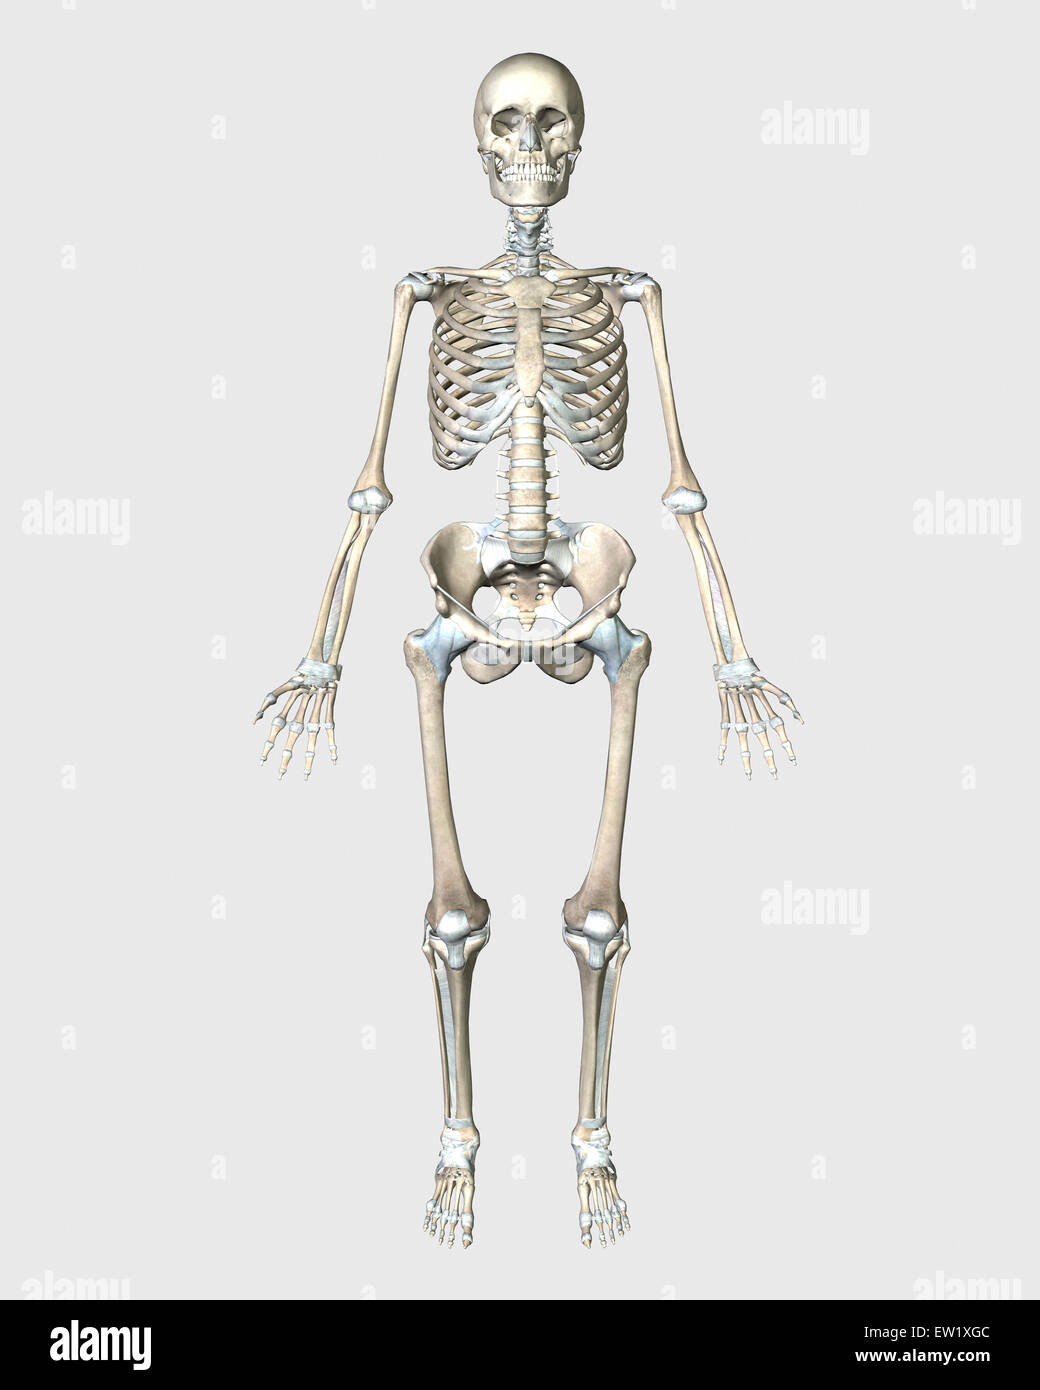 Anatomy Skeletal System Stock Photos Anatomy Skeletal System Stock